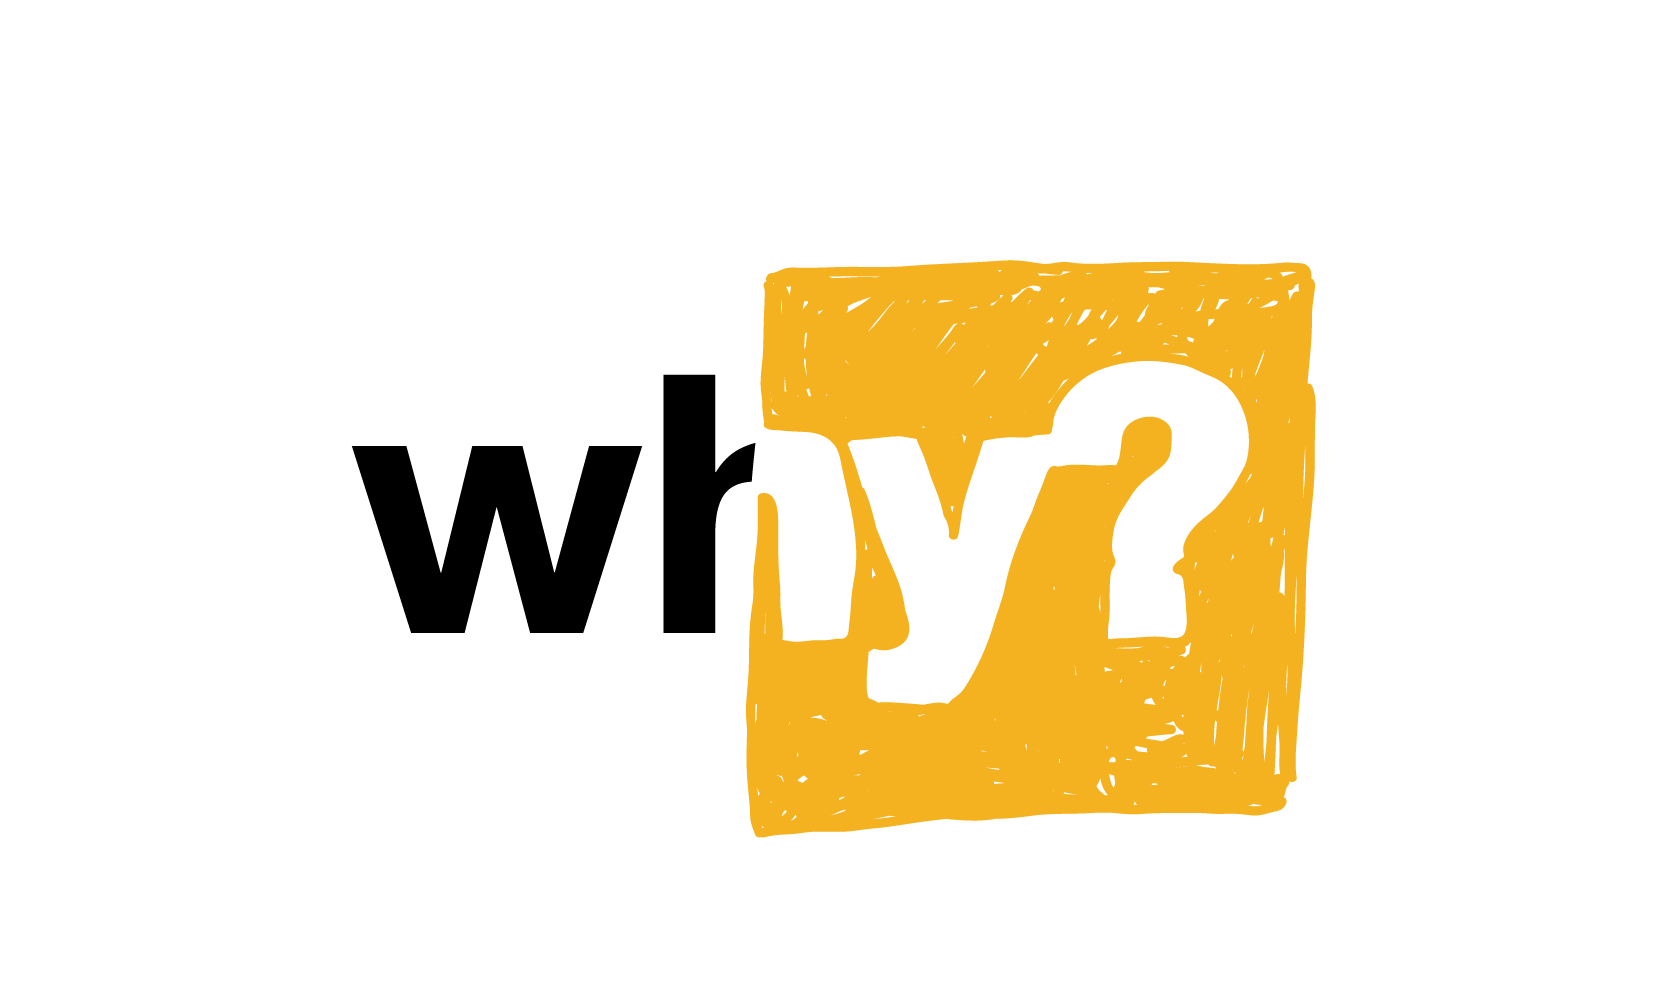 RC_Website__01. Why.png